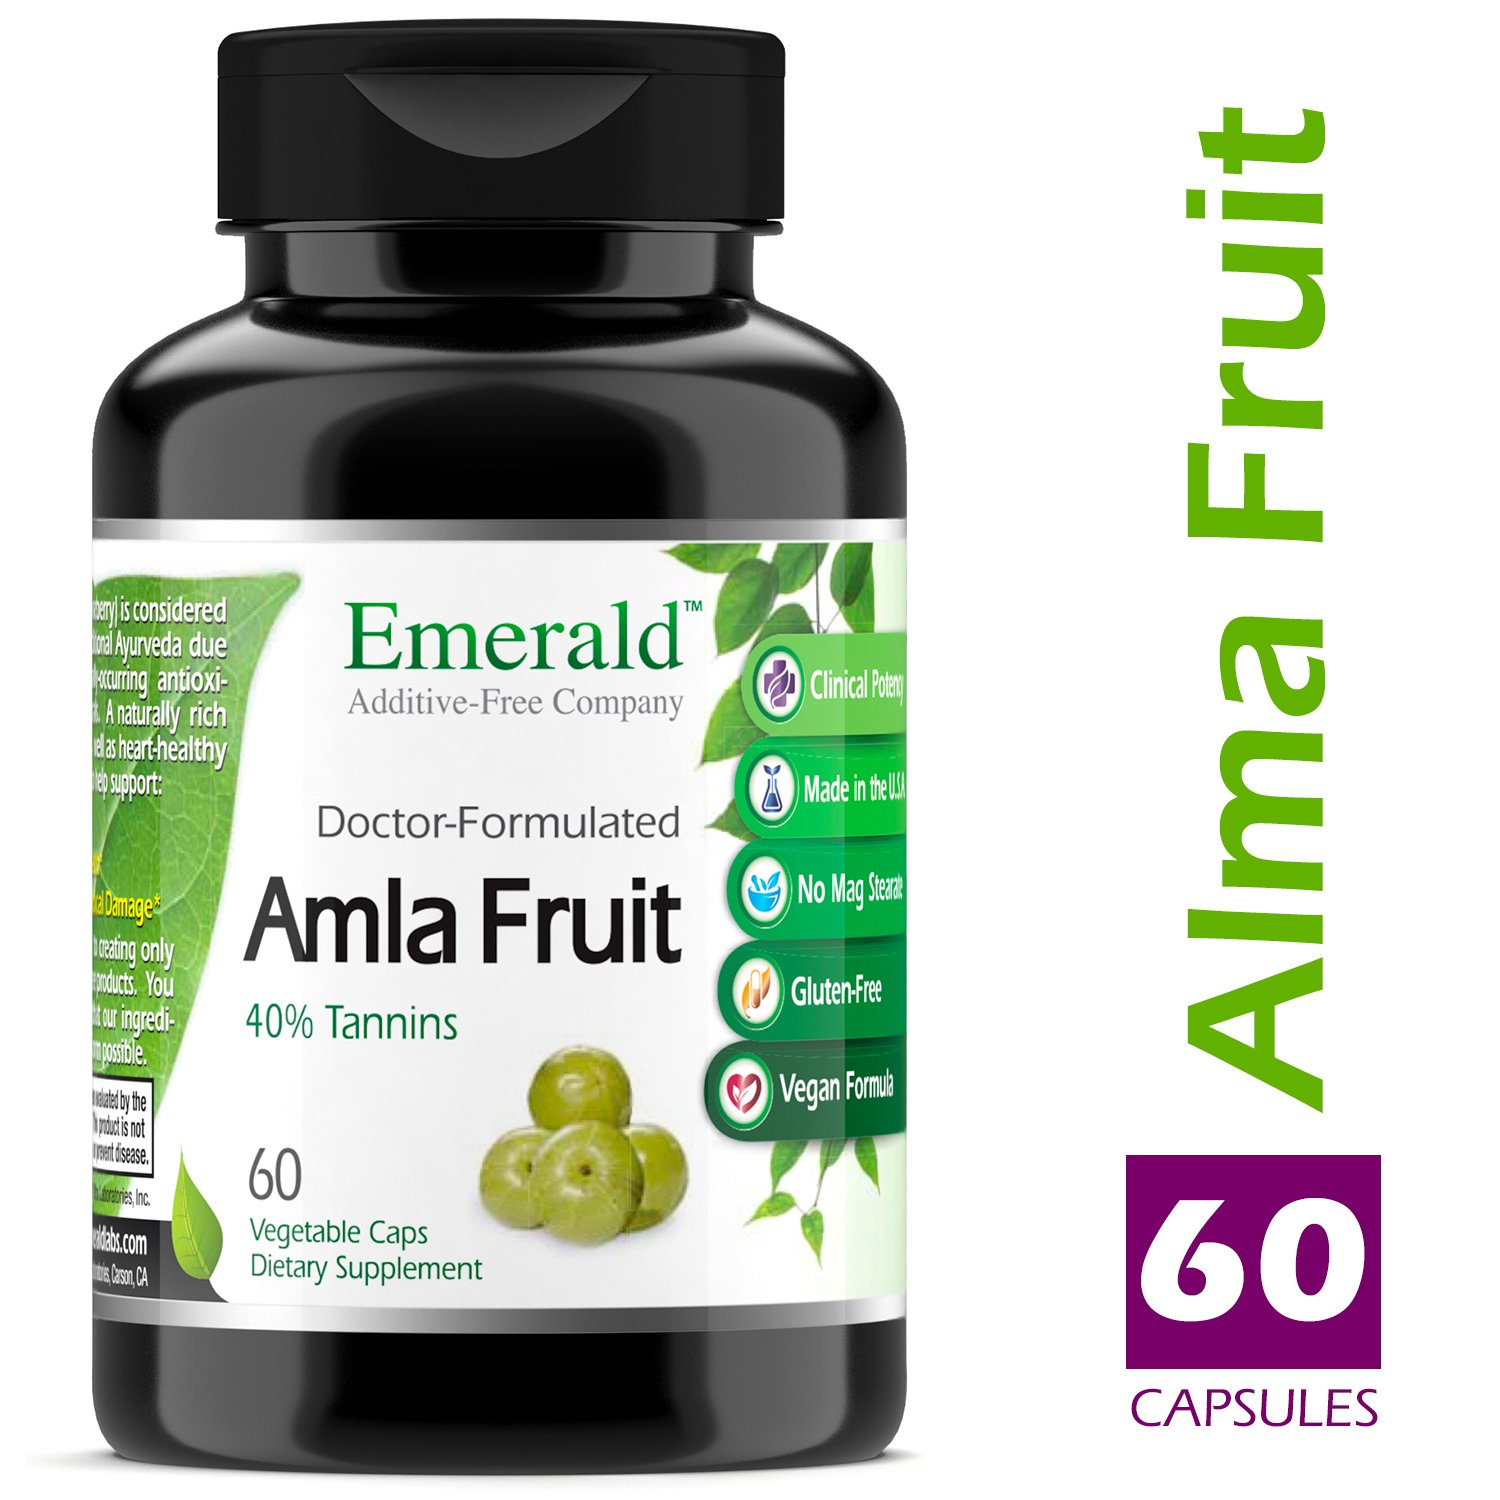 Amla Fruit - Natural Source Vitamin C, Powerful Immune Support, Digestive Support, Sore Throat Relief, Anti-Aging - Emerald Laboratories (Fruitrients) - 60 Vegetable Capsules